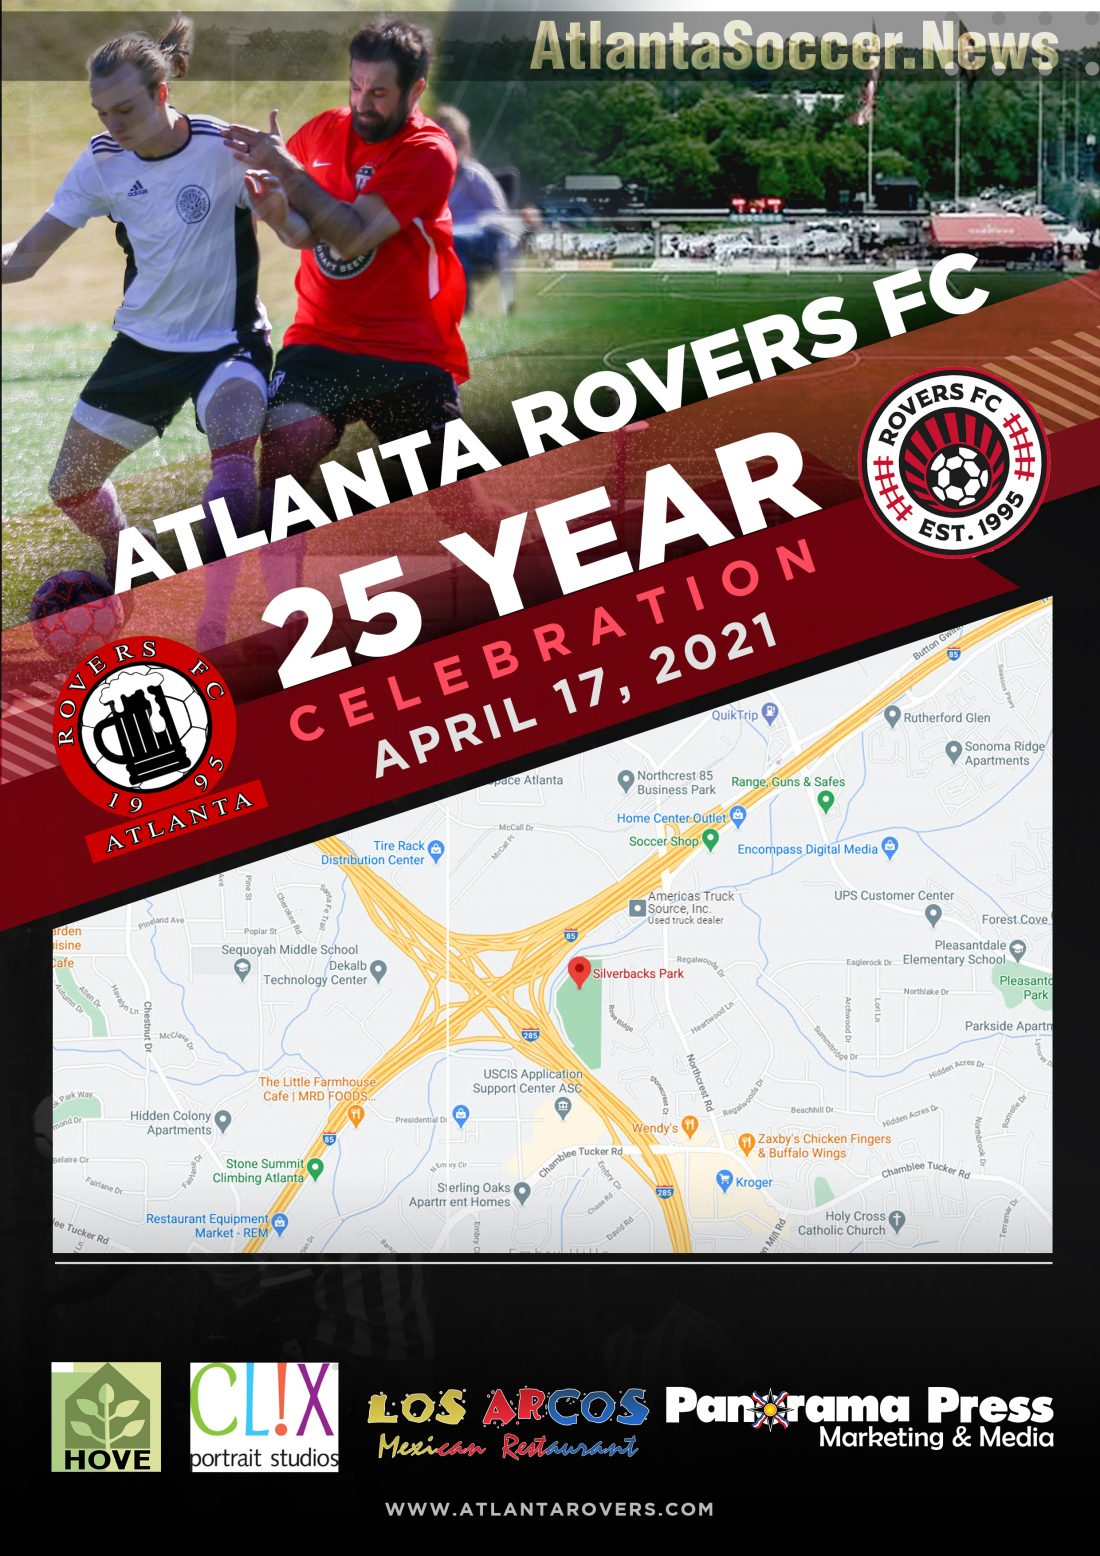 FLYER2-1-1100x1556 Atlanta Rovers FC Celebrate 25 Years and you are invited to the Party